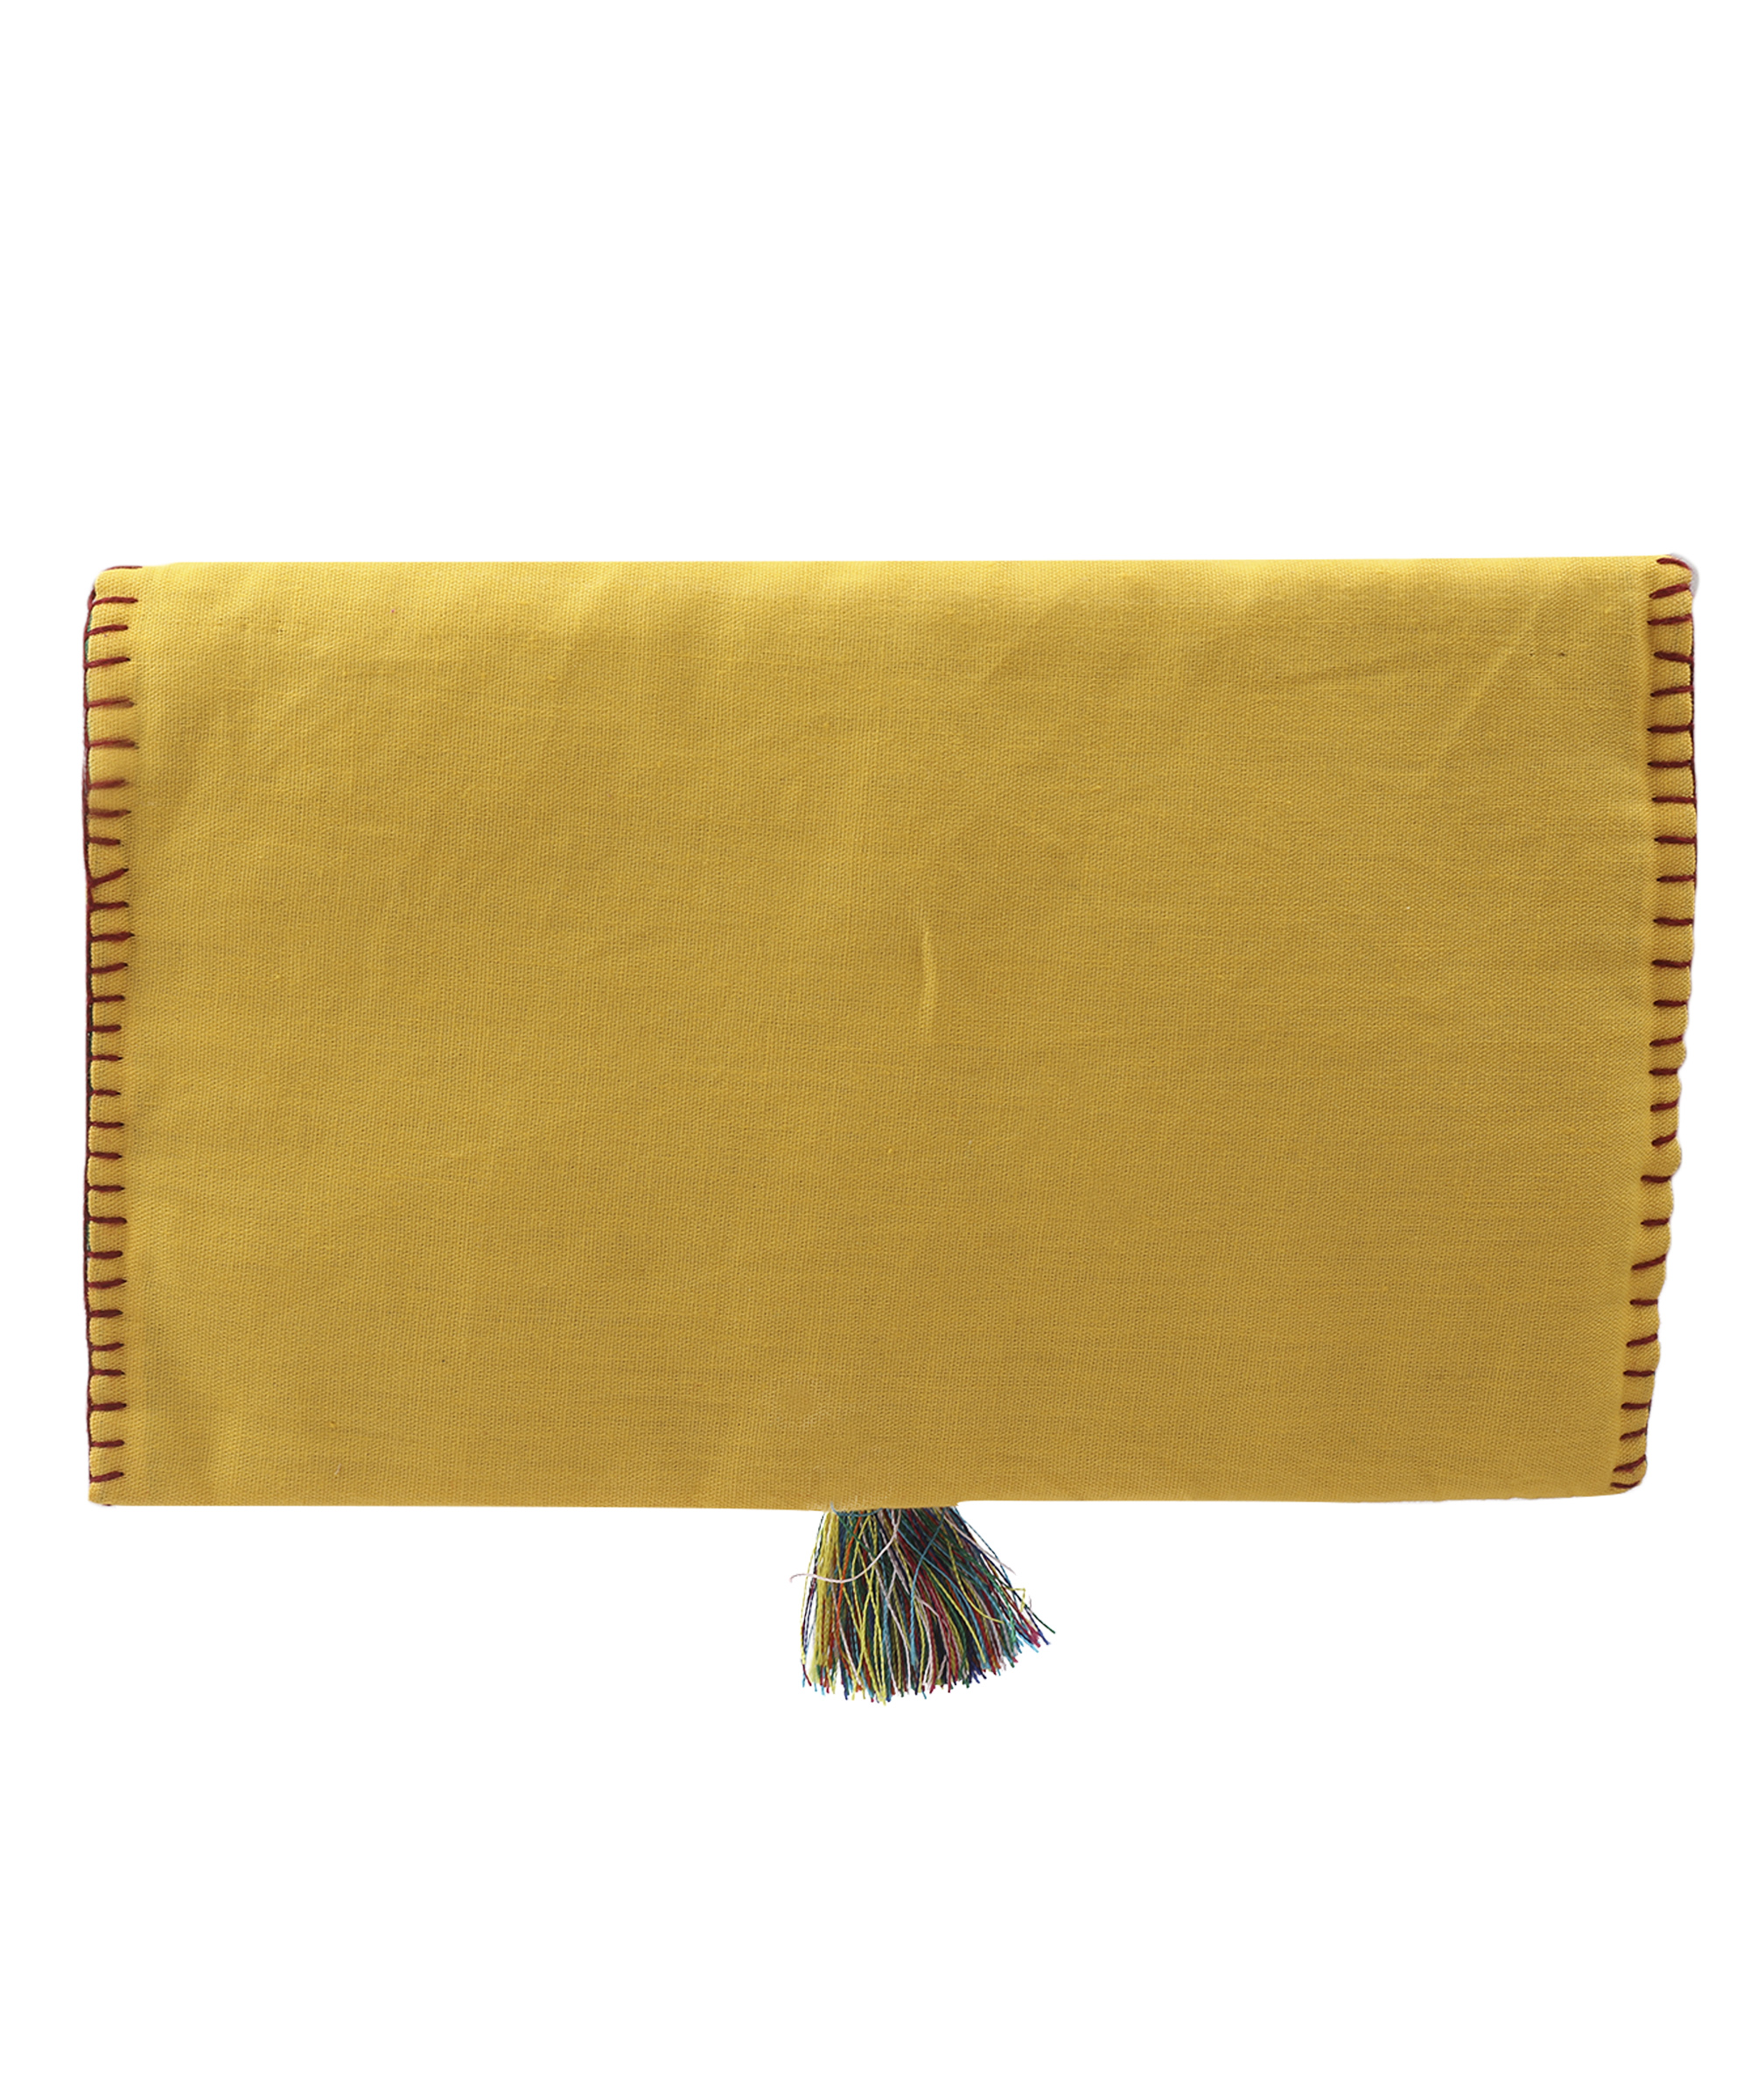 Women's Embroidered Clutch, Poplin Cotton Fabric (Yellow) Slider Thumbnail 4/4